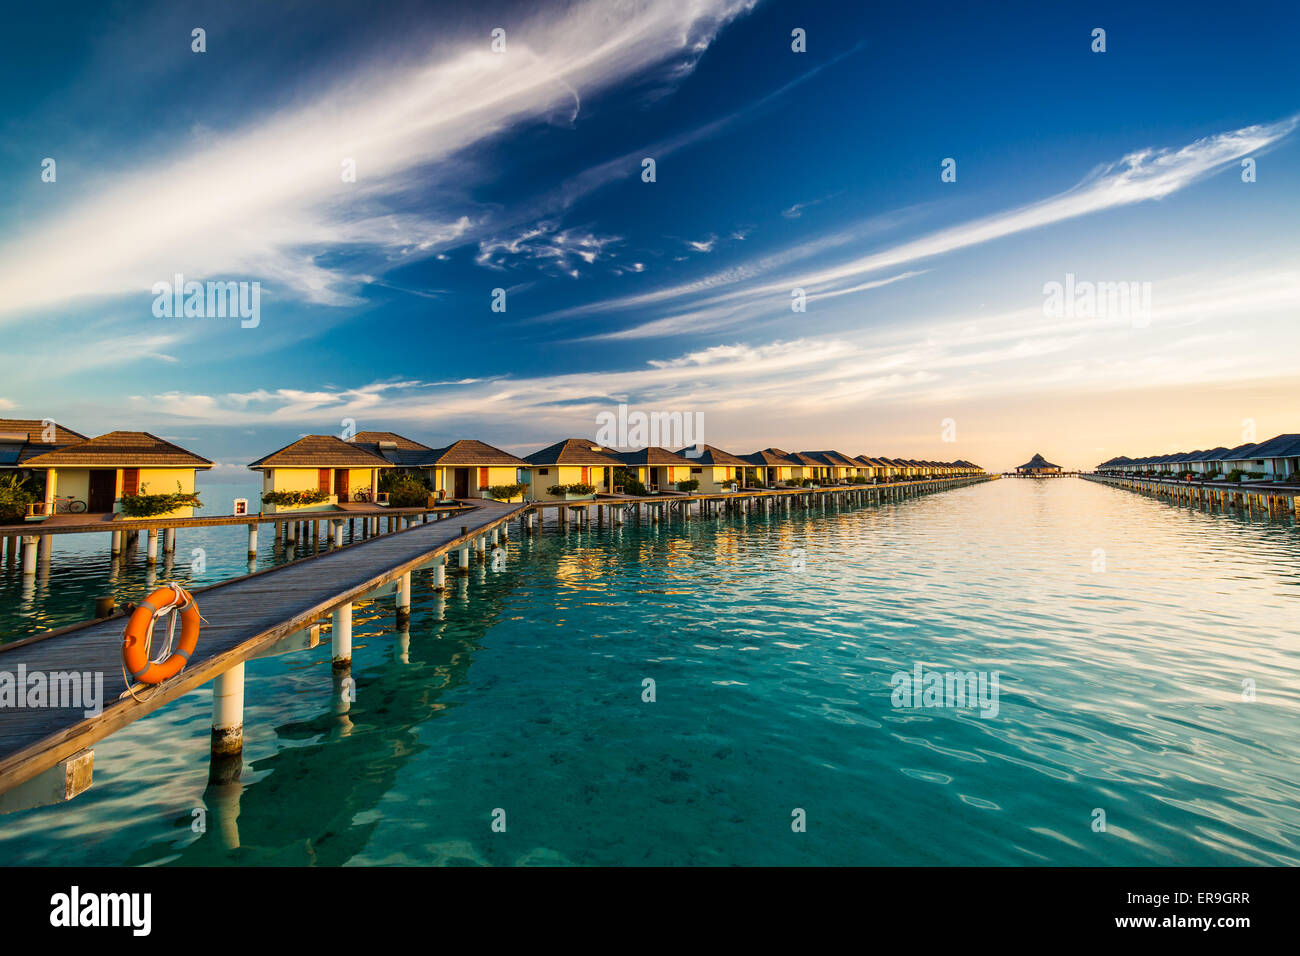 Sunset time on island of Maldives over the bridge connecting over-water bungallows - Stock Image